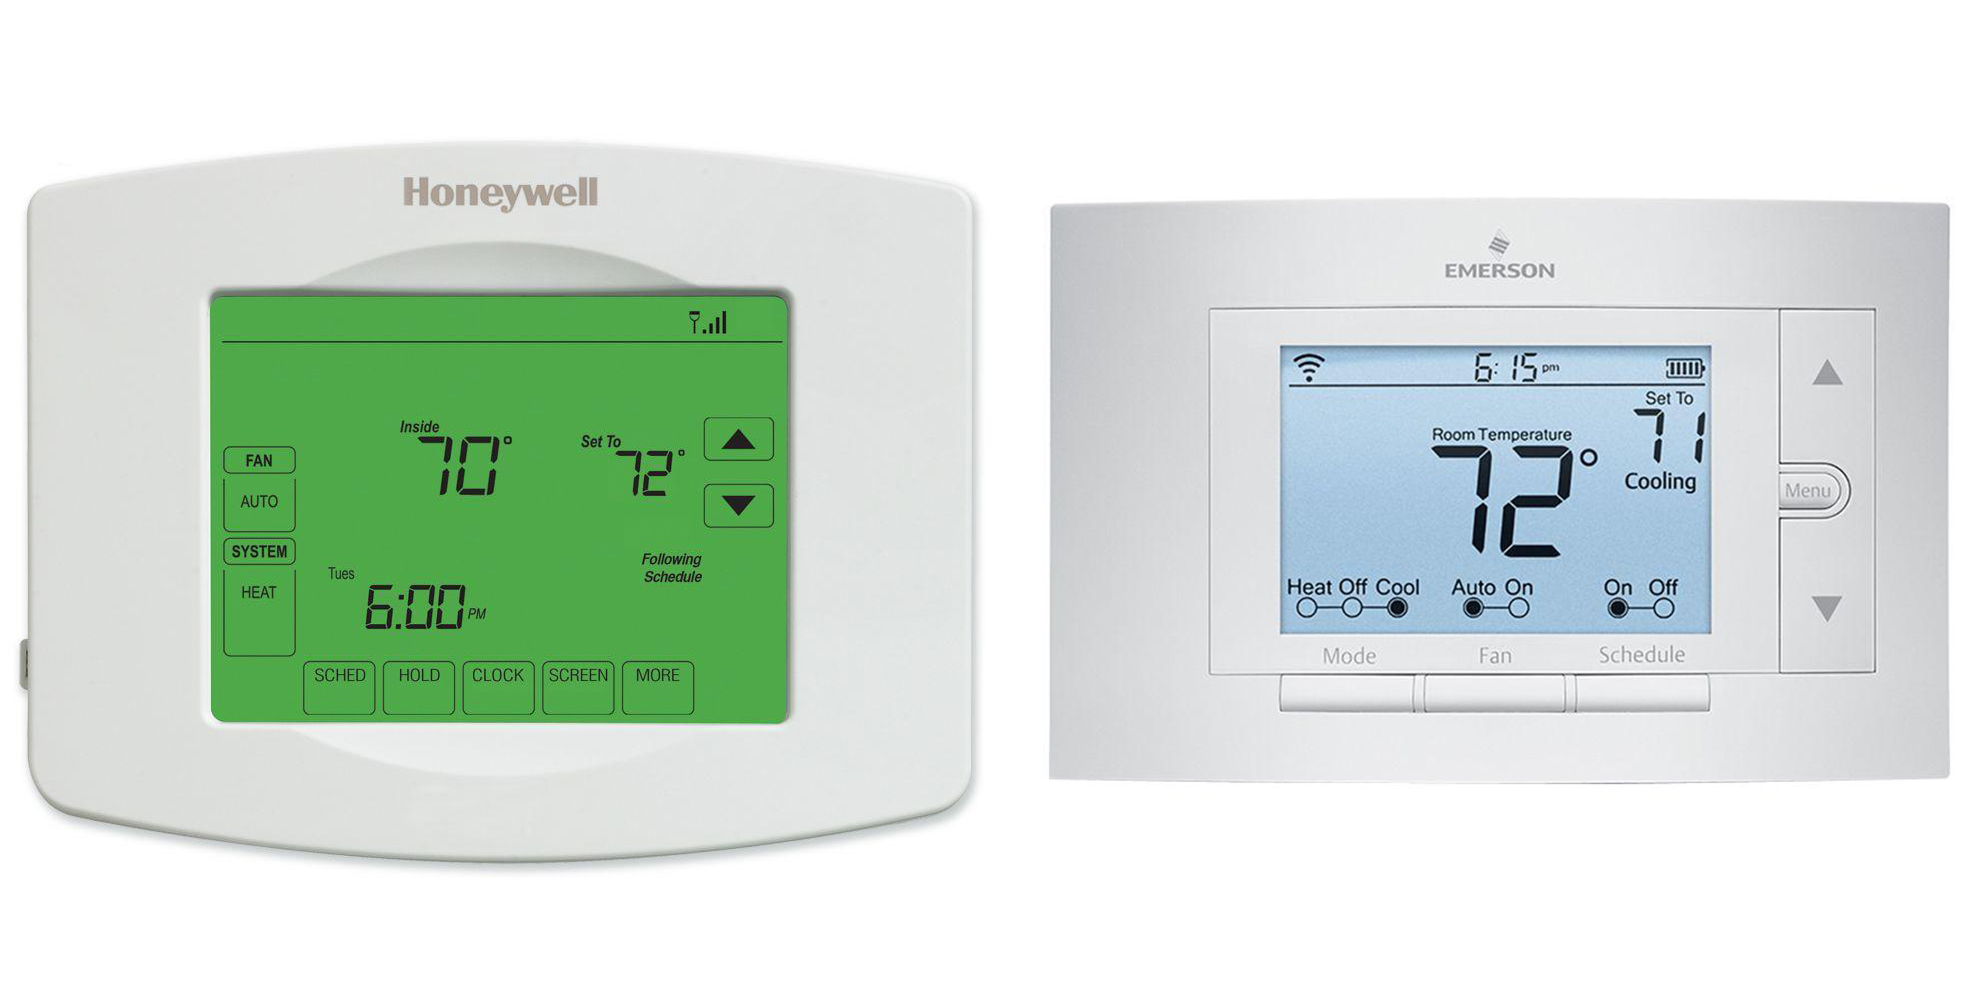 honeywell-emerson-wifi-thermostats